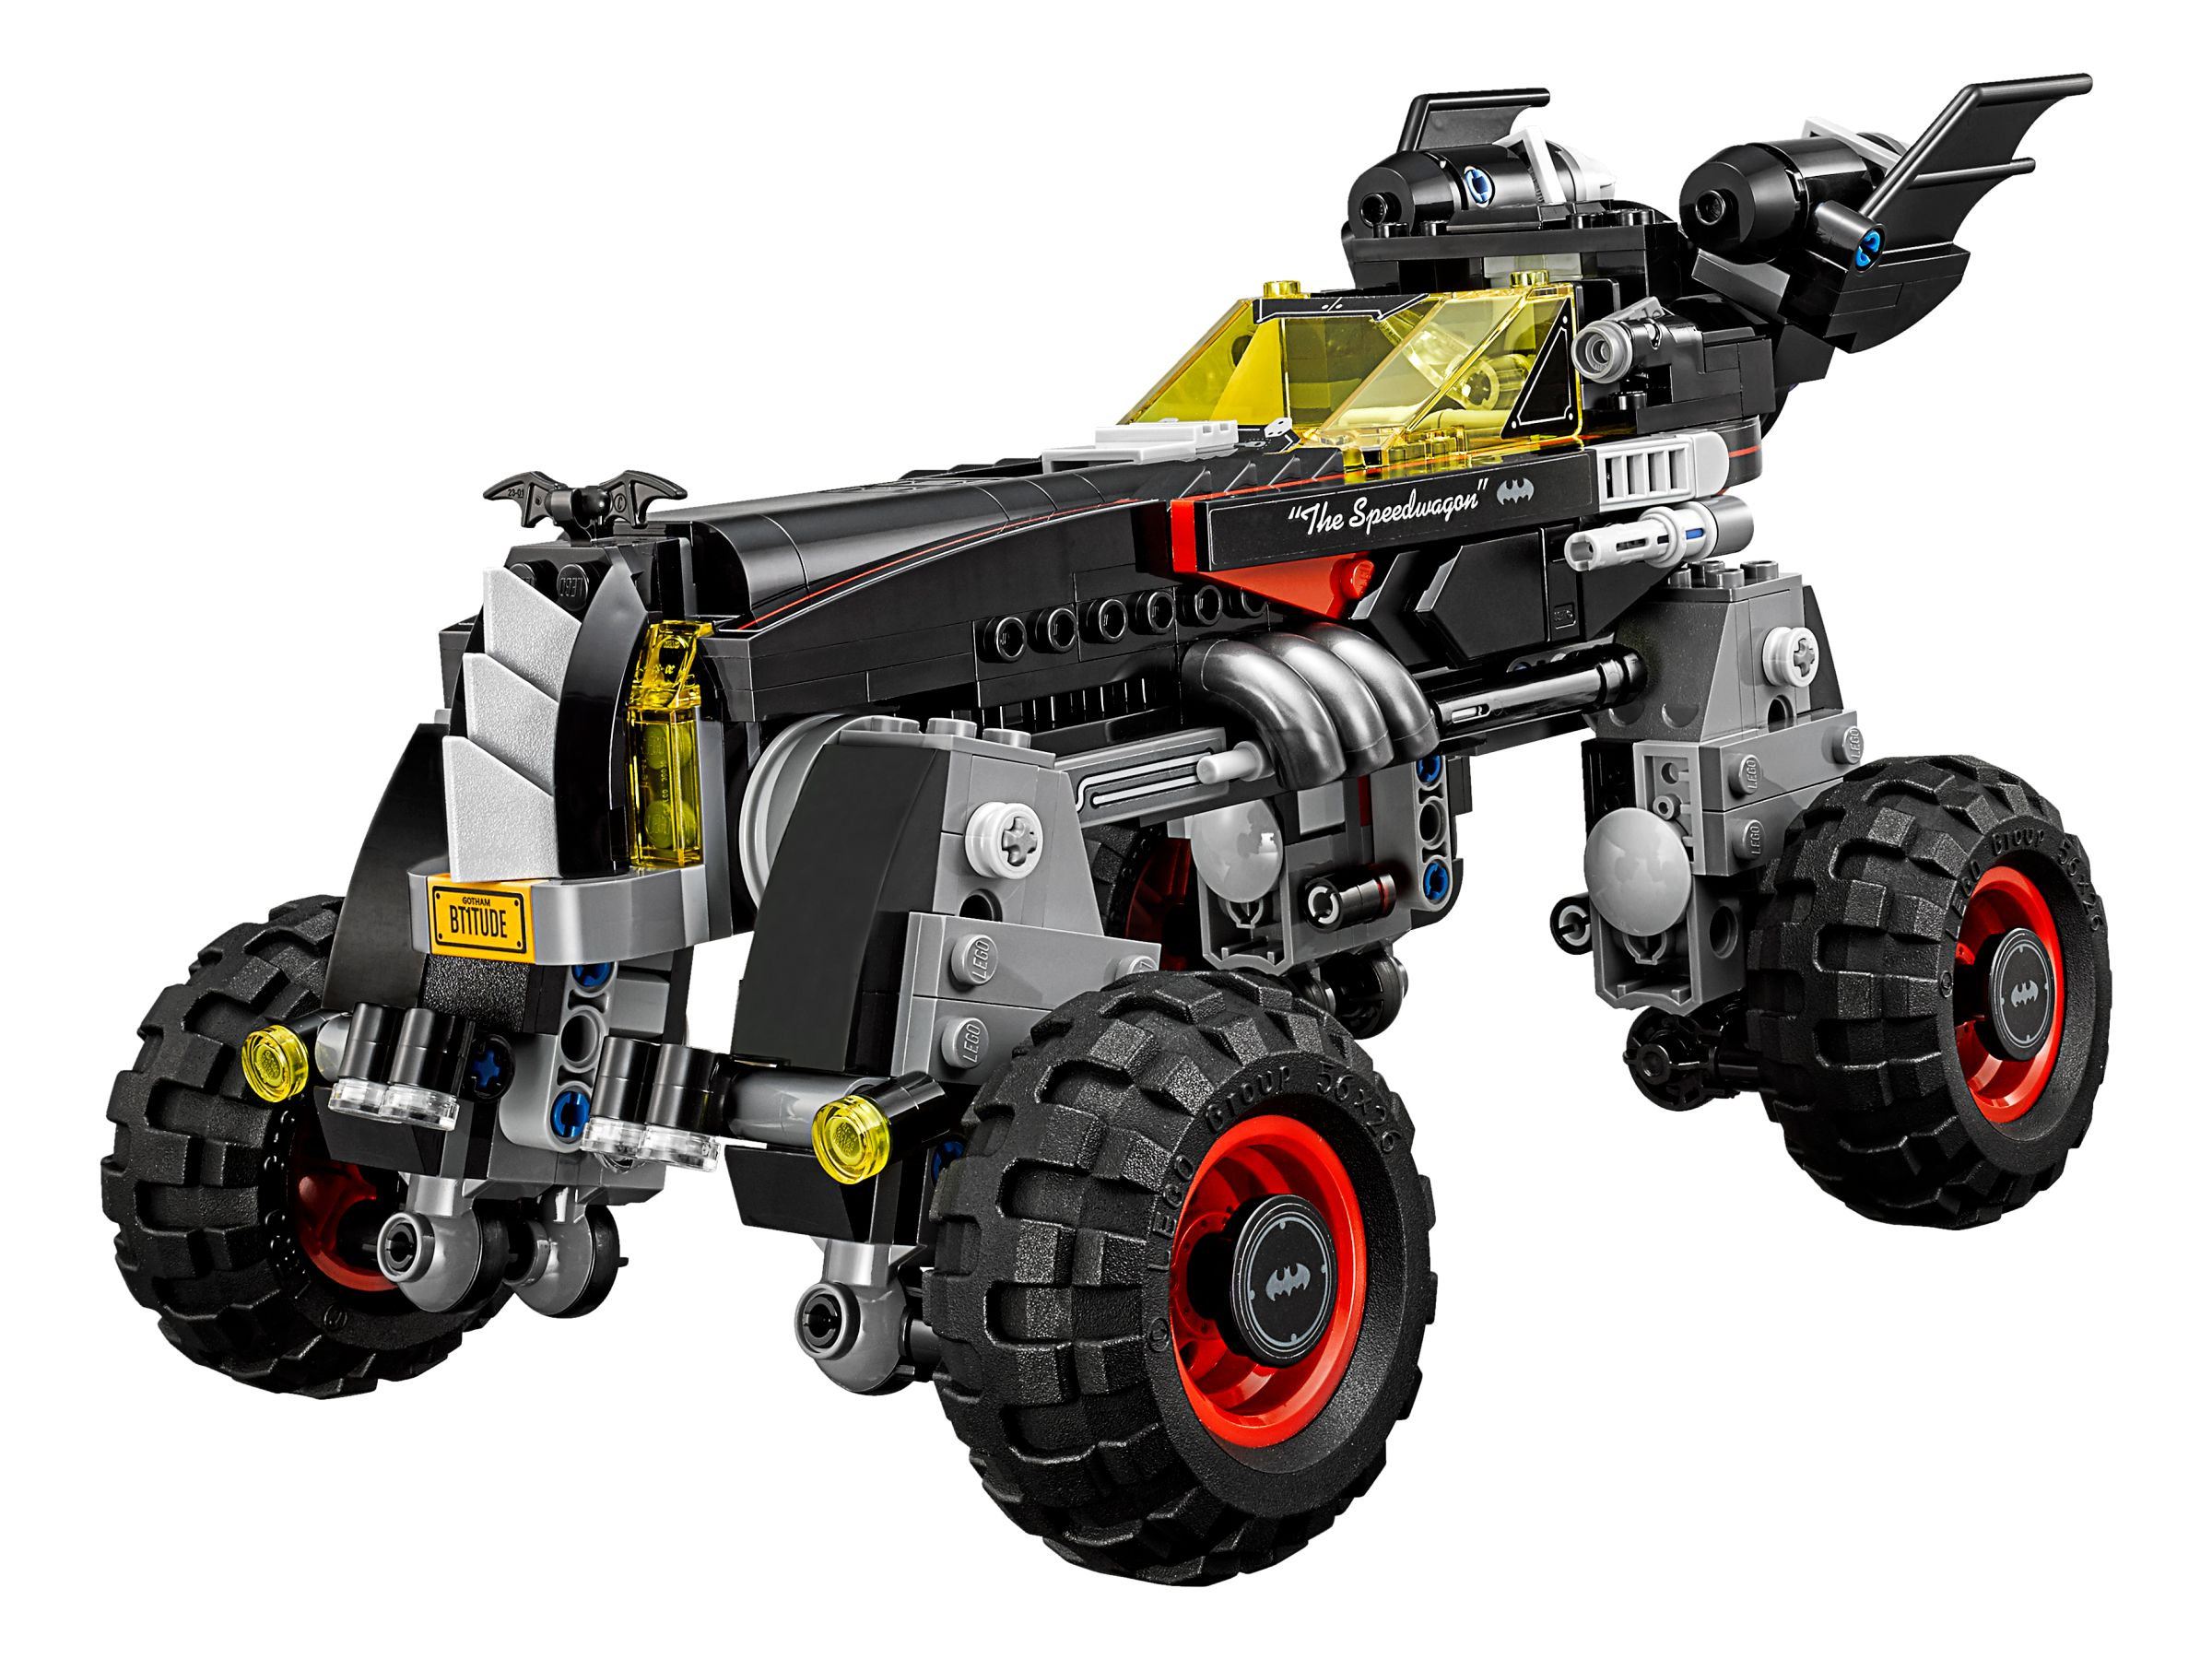 LEGO The LEGO Batman Movie 70905 Das Batmobil LEGO_70905_alt3.jpg